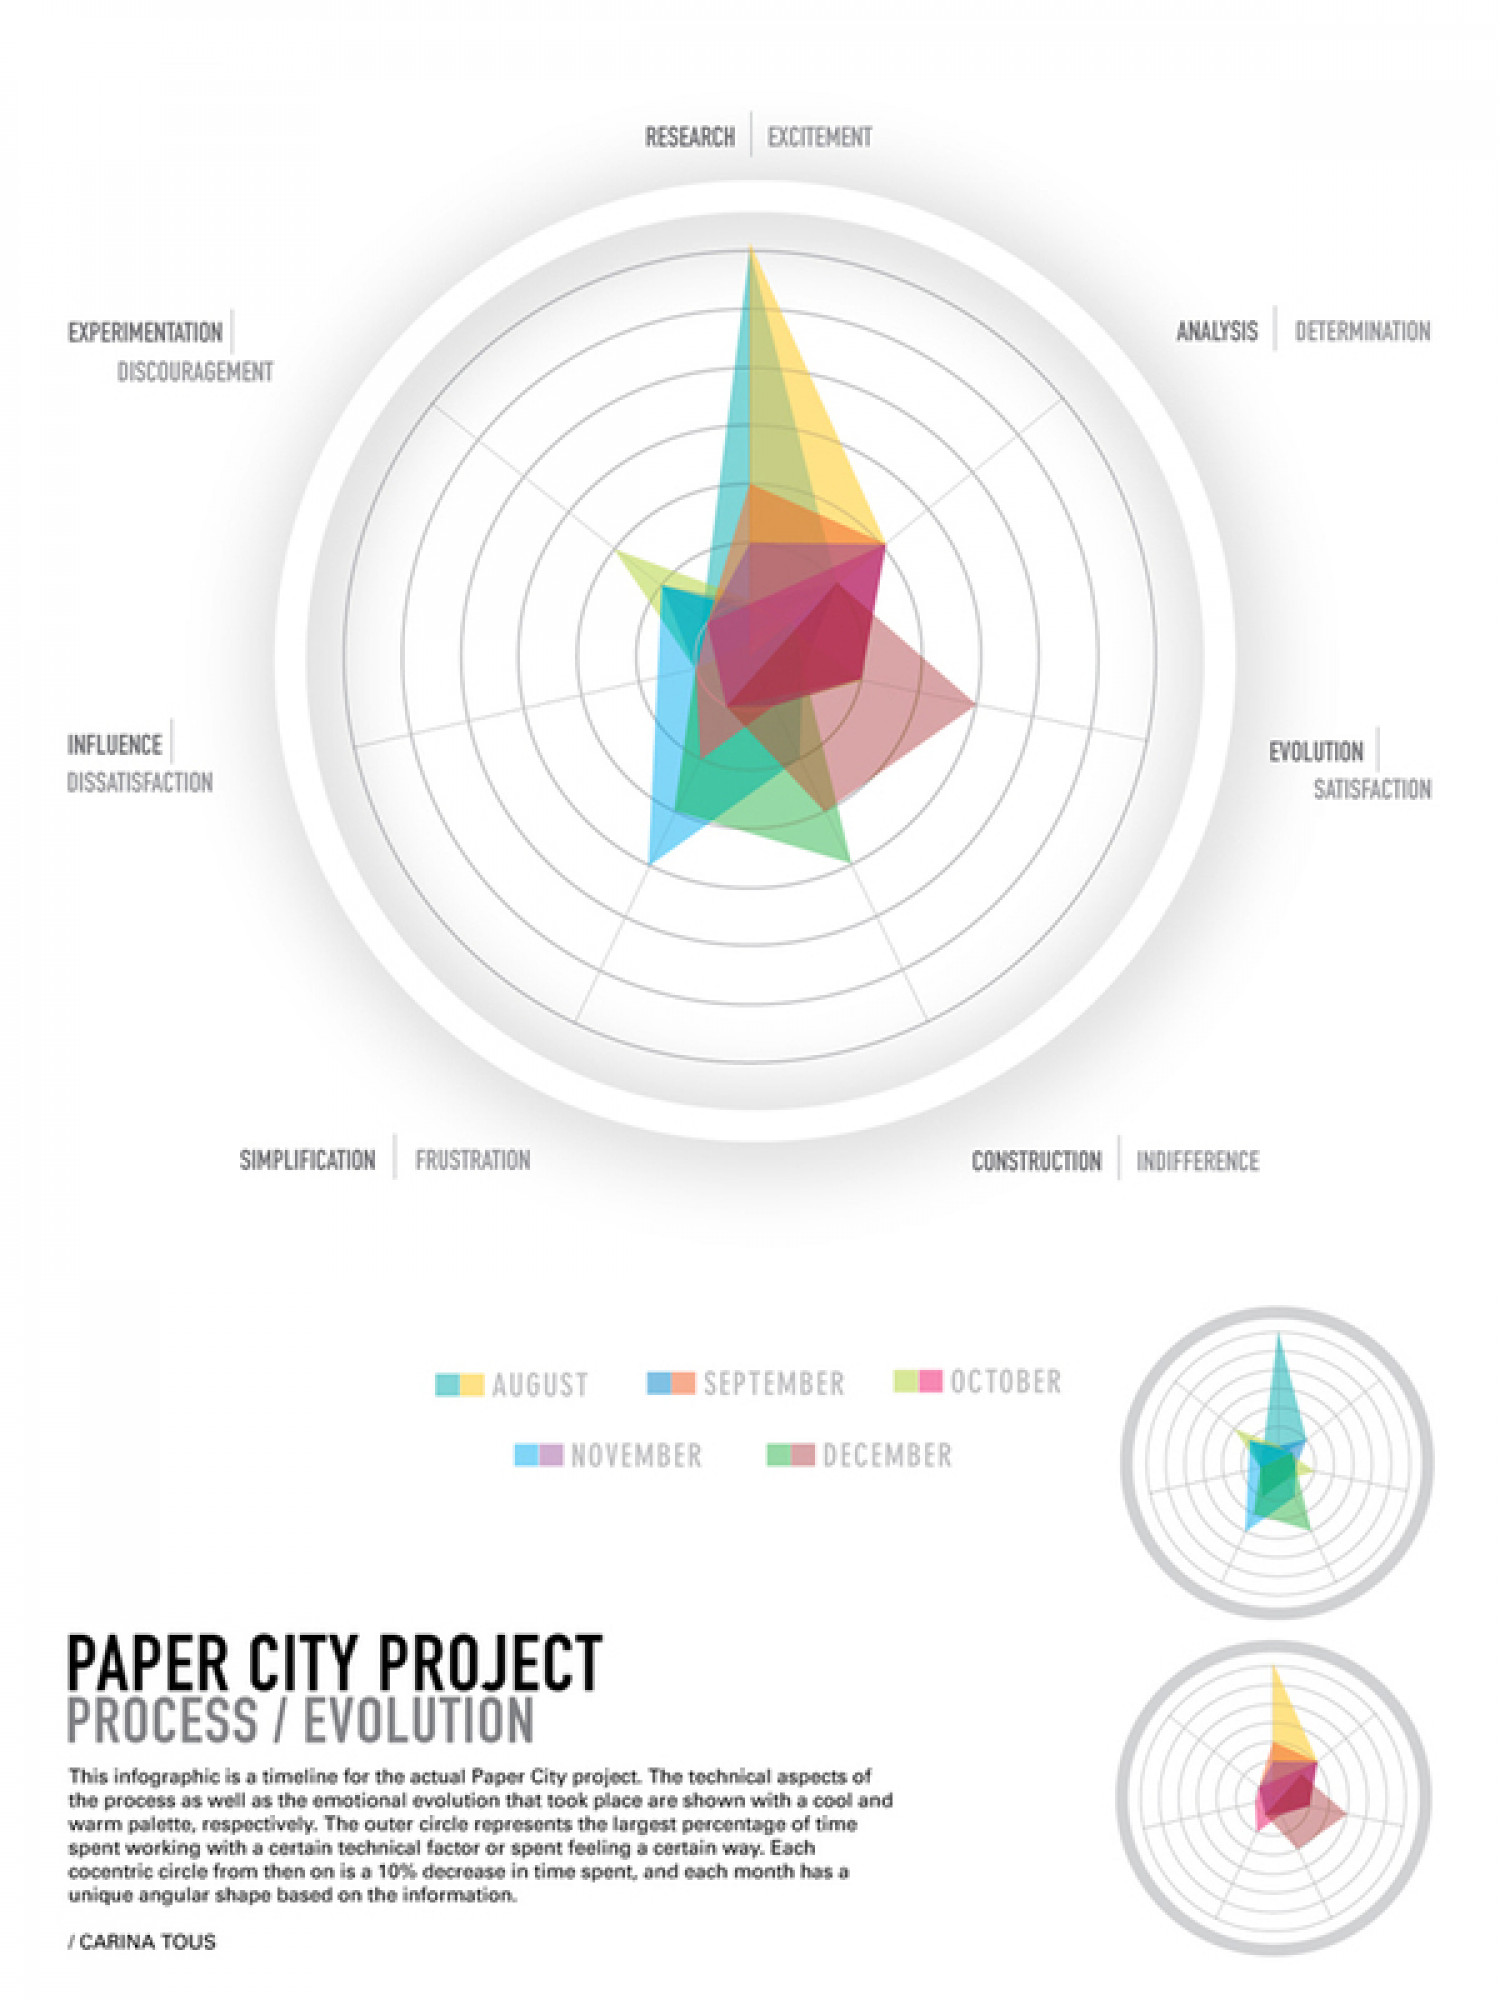 Paper City Project: Process/Evolution Infographic